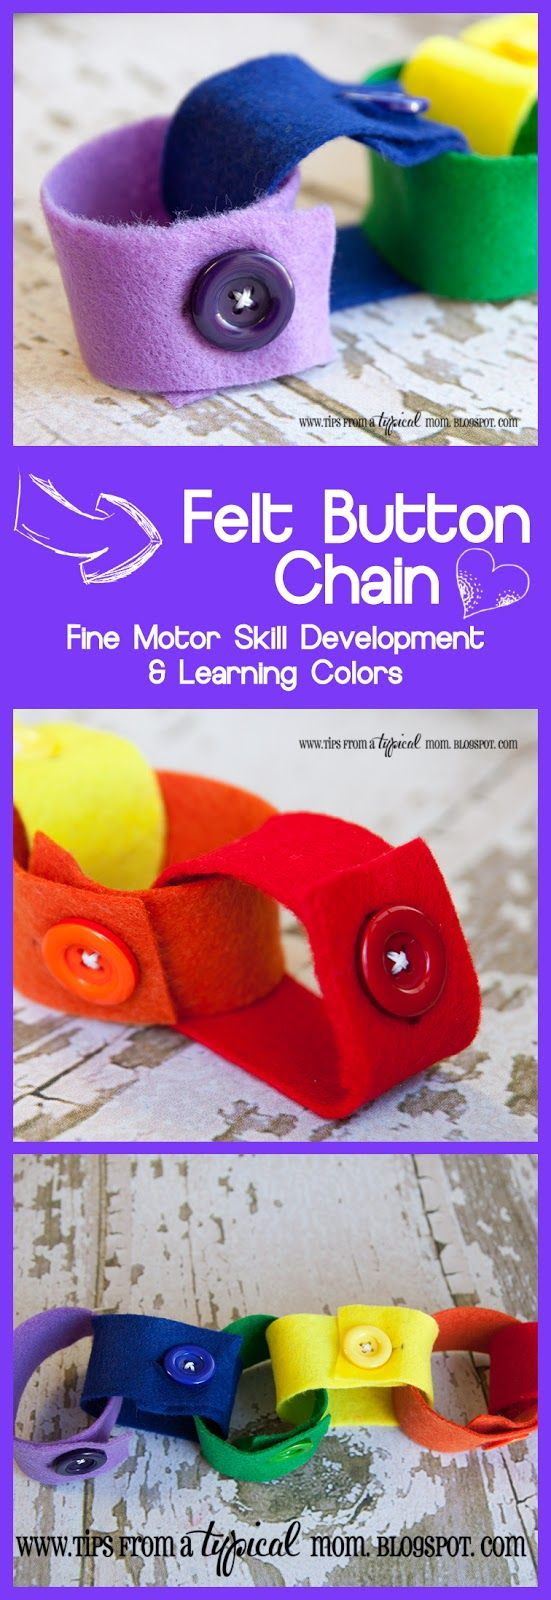 // Apprendre à boutonner // Tips from a Typical Mom: DIY Felt Button Chain~ Learning Fine Motor Skills & Colors